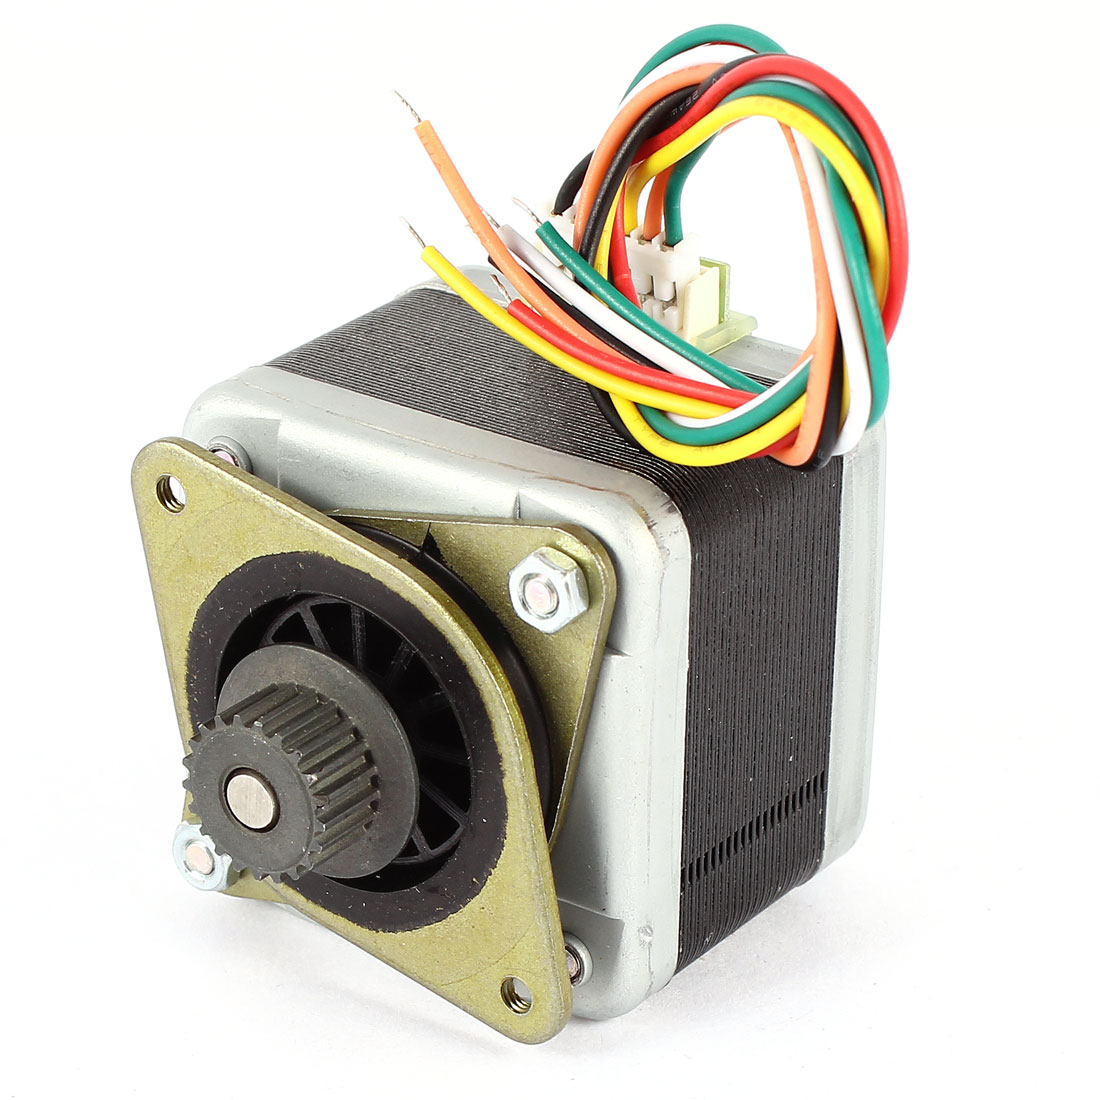 5mm Dia Shaft 42mm Geared Stepper Stepping Motor DC 5V 0.5A 7 Ohm for 3D Printer